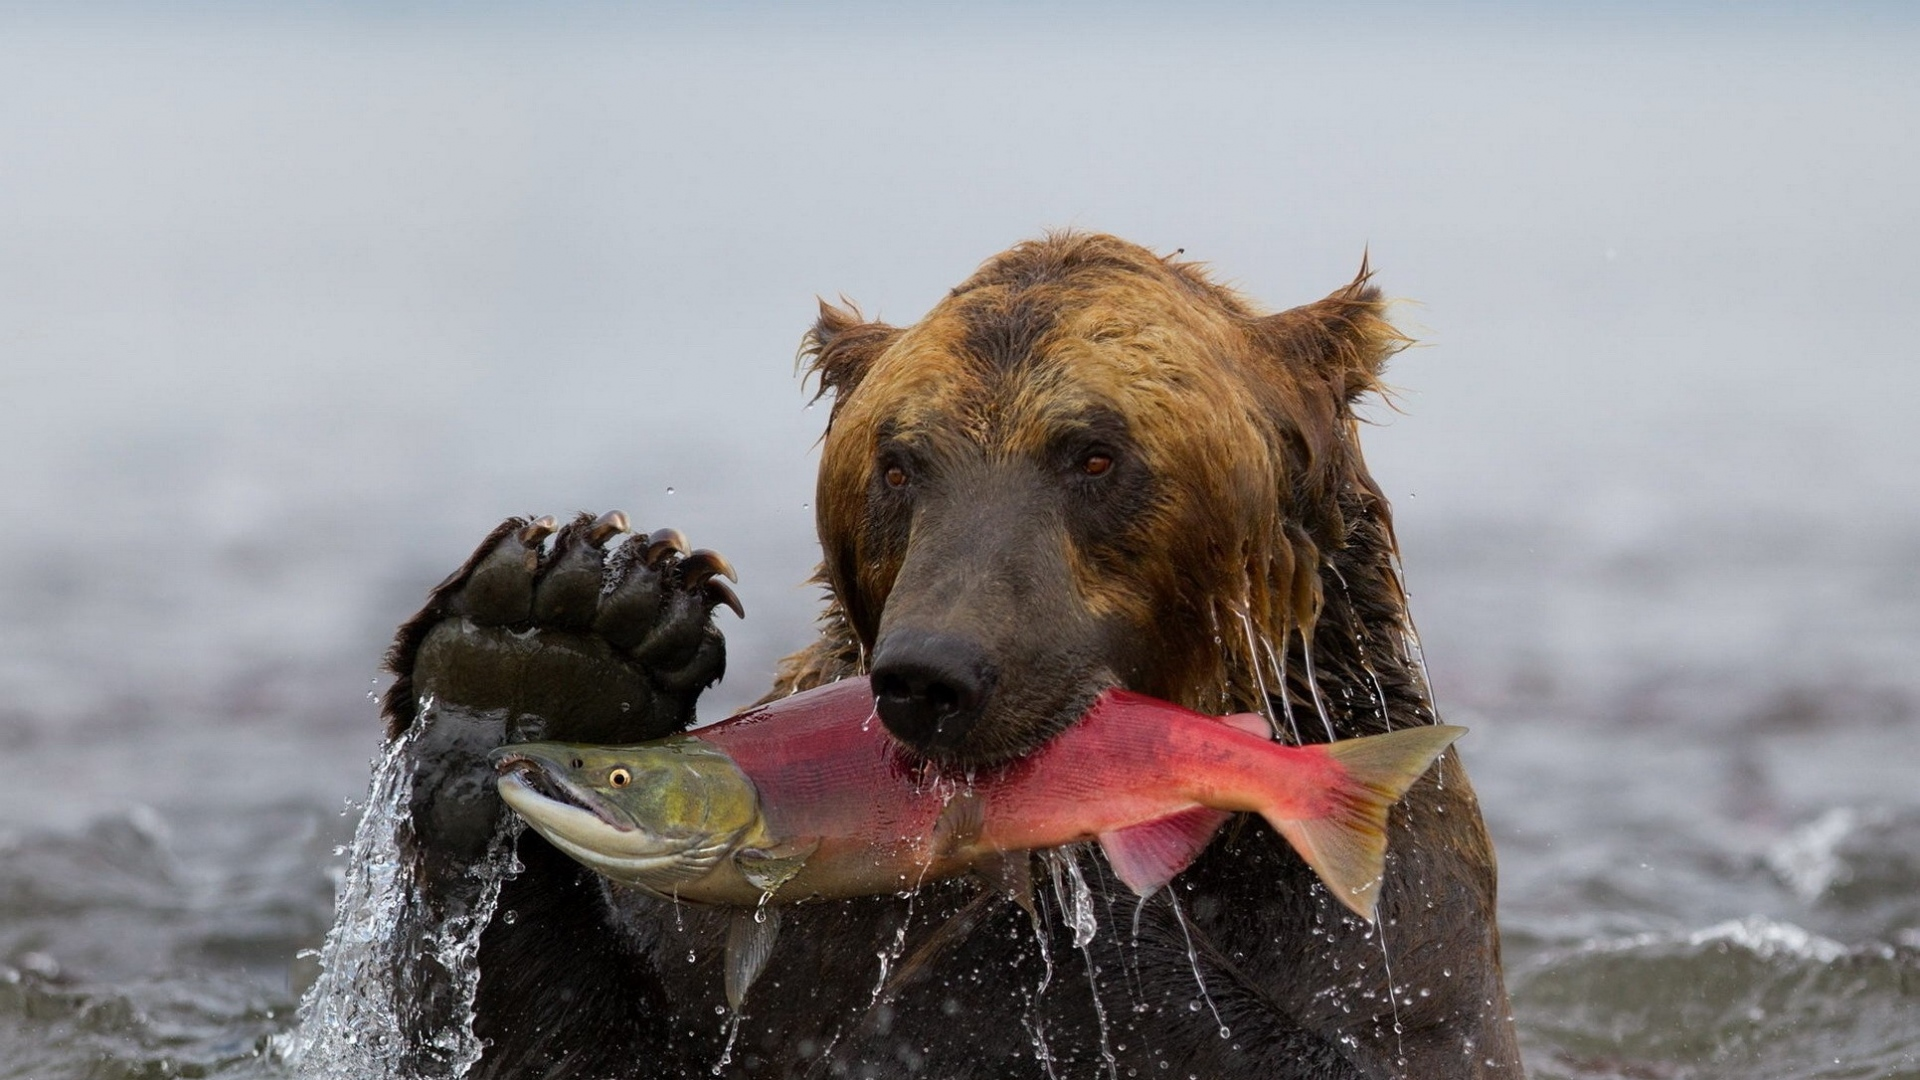 https-craft-com-download-bear-fish-fishing-water-wet-1920x1080-wallpaper-wpc5806121